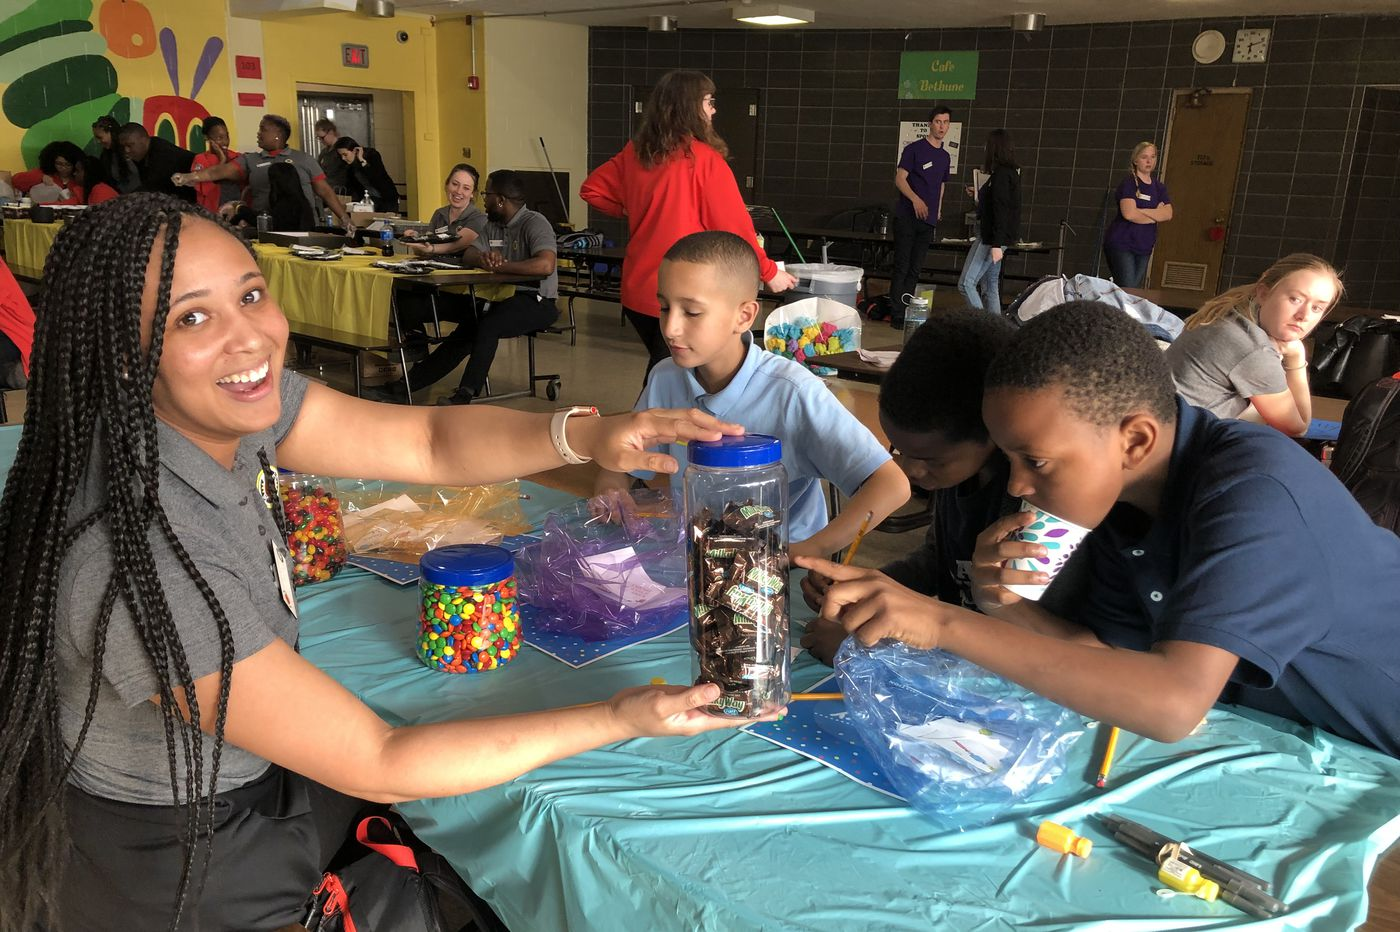 Philly becoming a national model for how to make serving the community more common